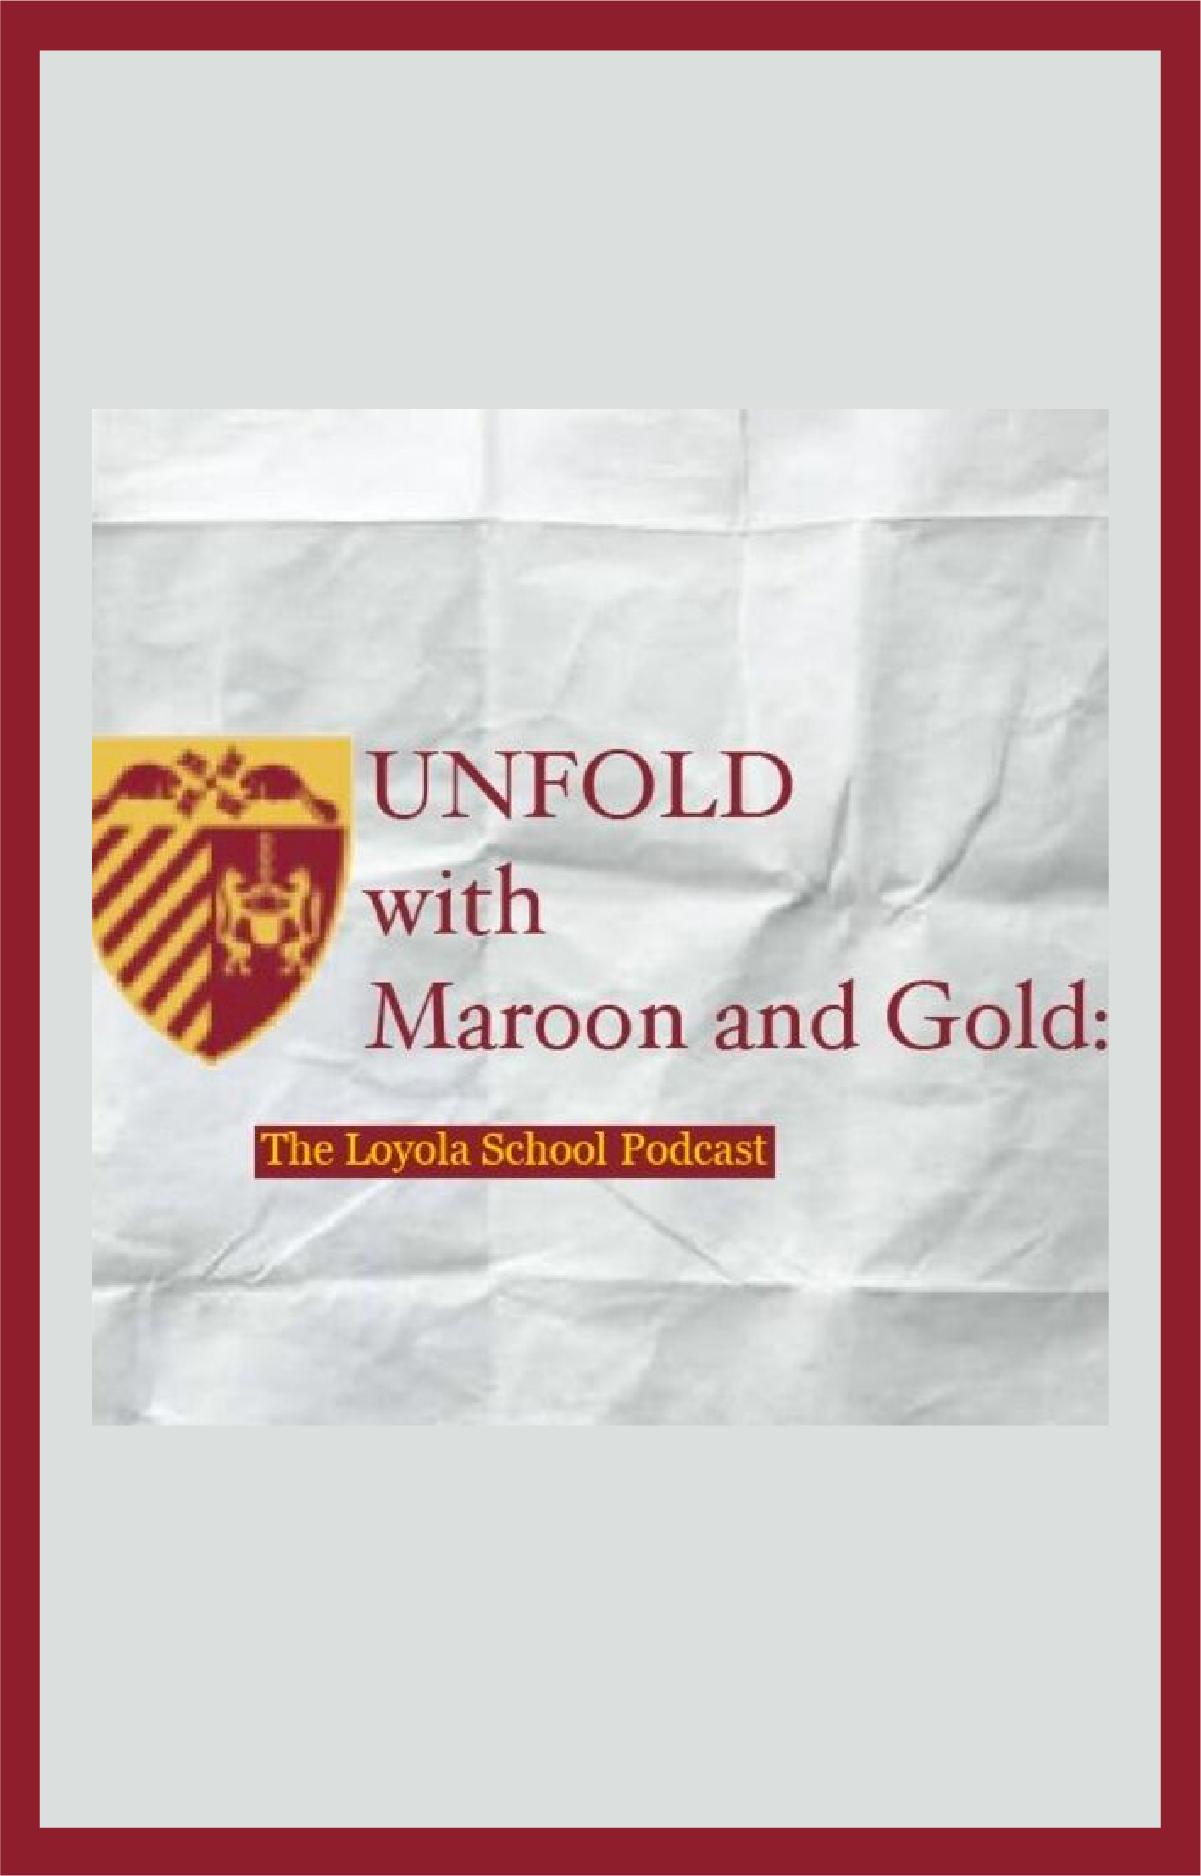 Unfold with Maroon and Gold